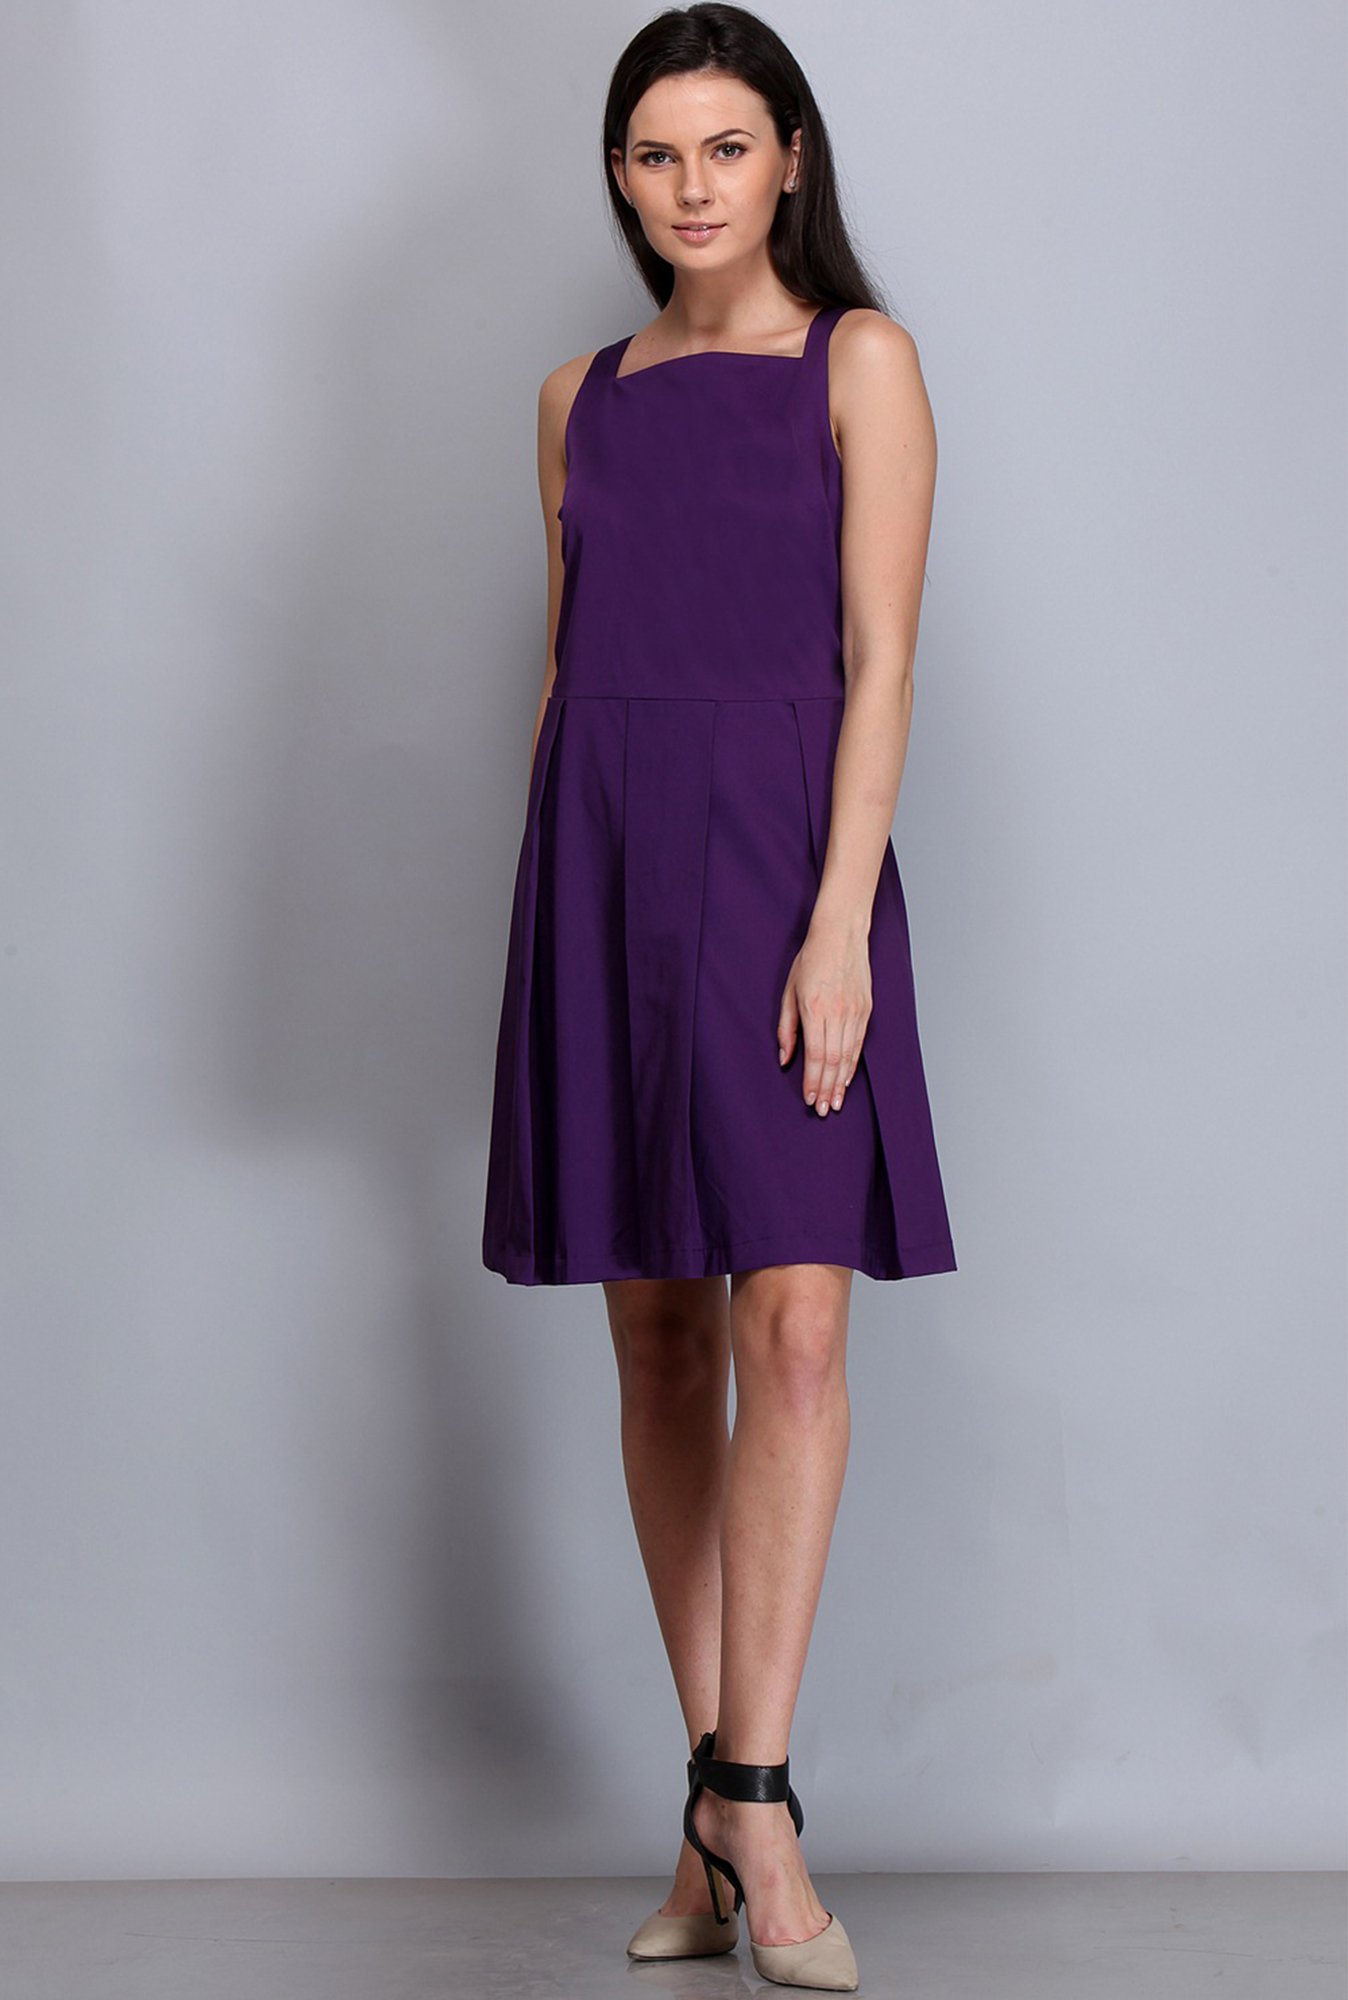 Kaaryah Purple Solid Dress